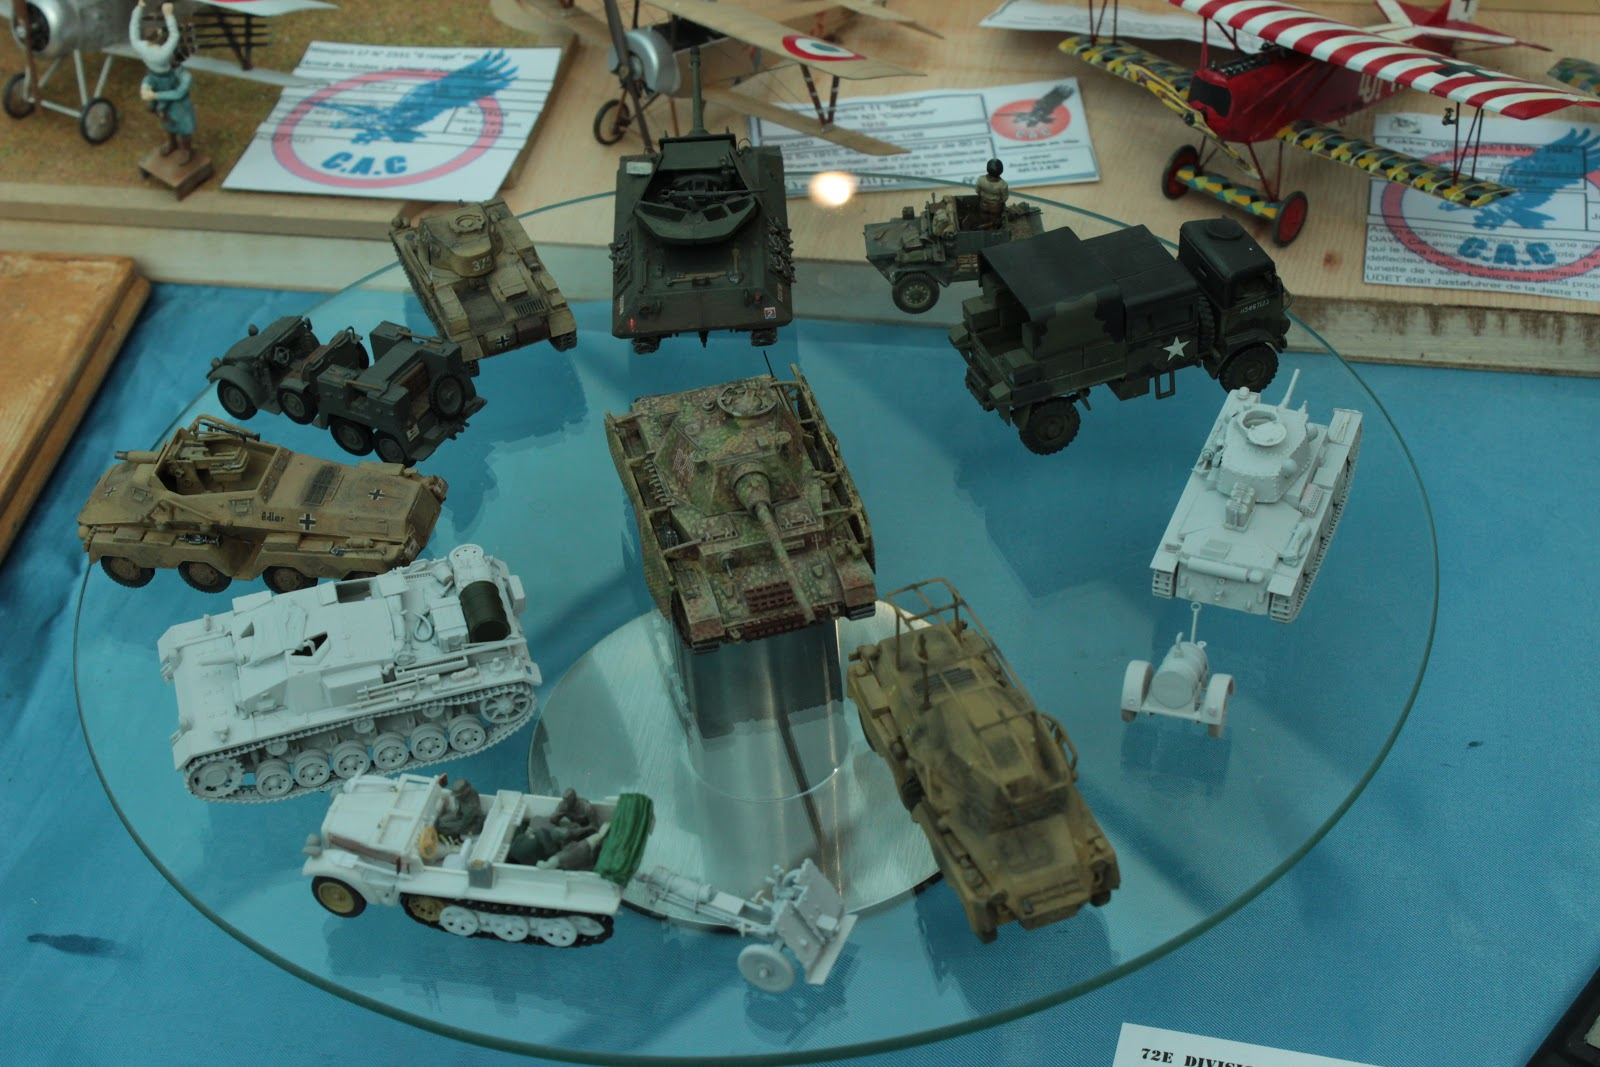 Maquettexpo 2017 14-15 octobre Hyères - Page 4 IMG_4371